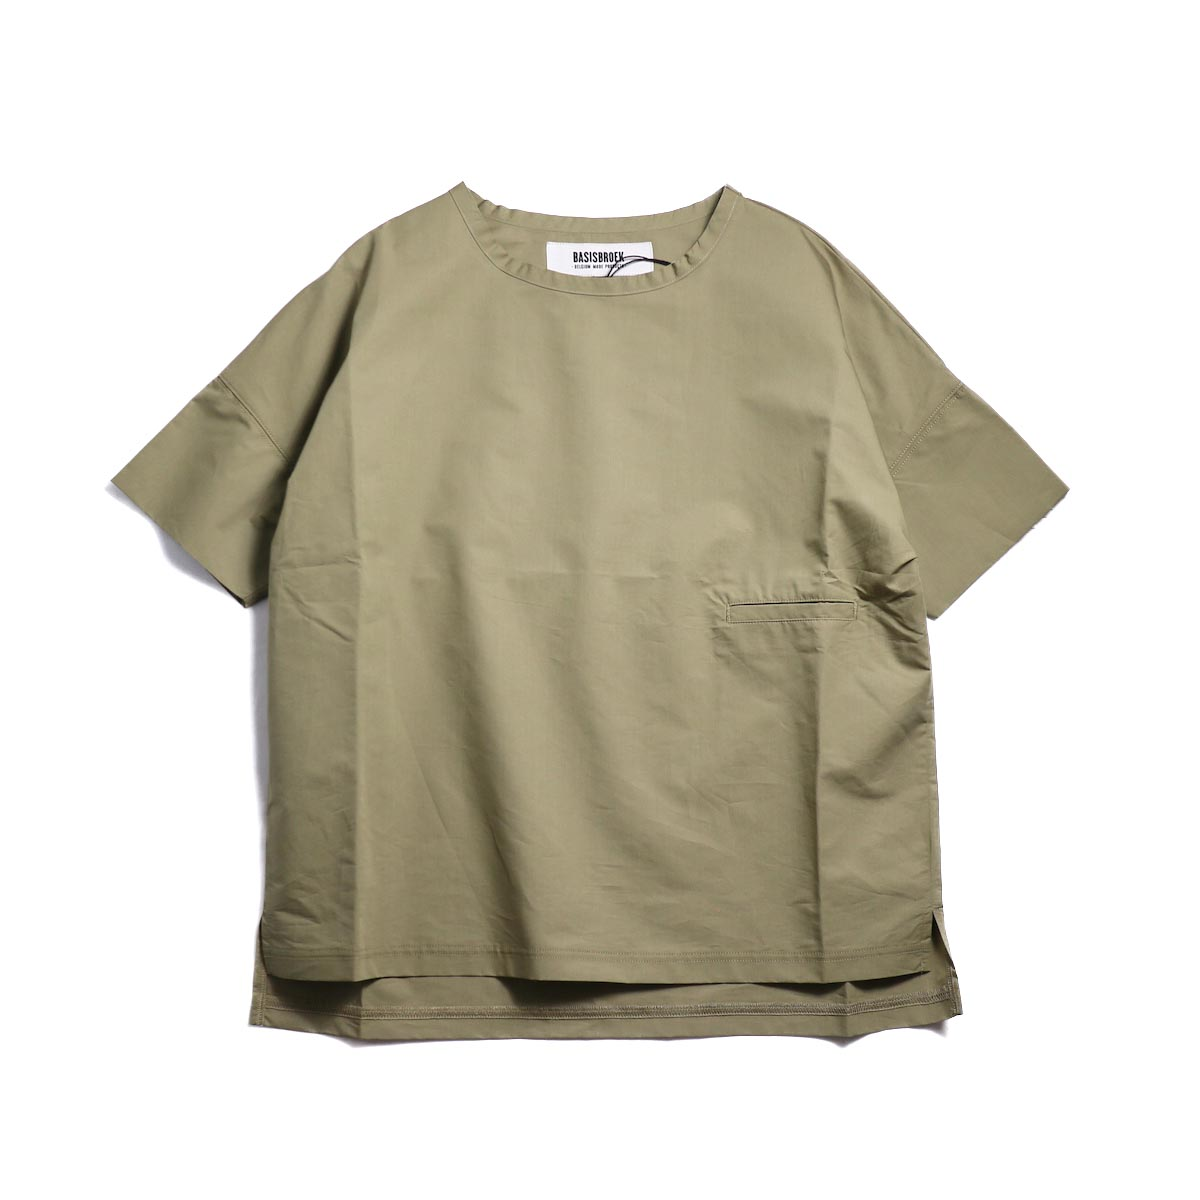 BASISBROEK / REMI -Cotton Silk PO Shirt (CHINO)正面